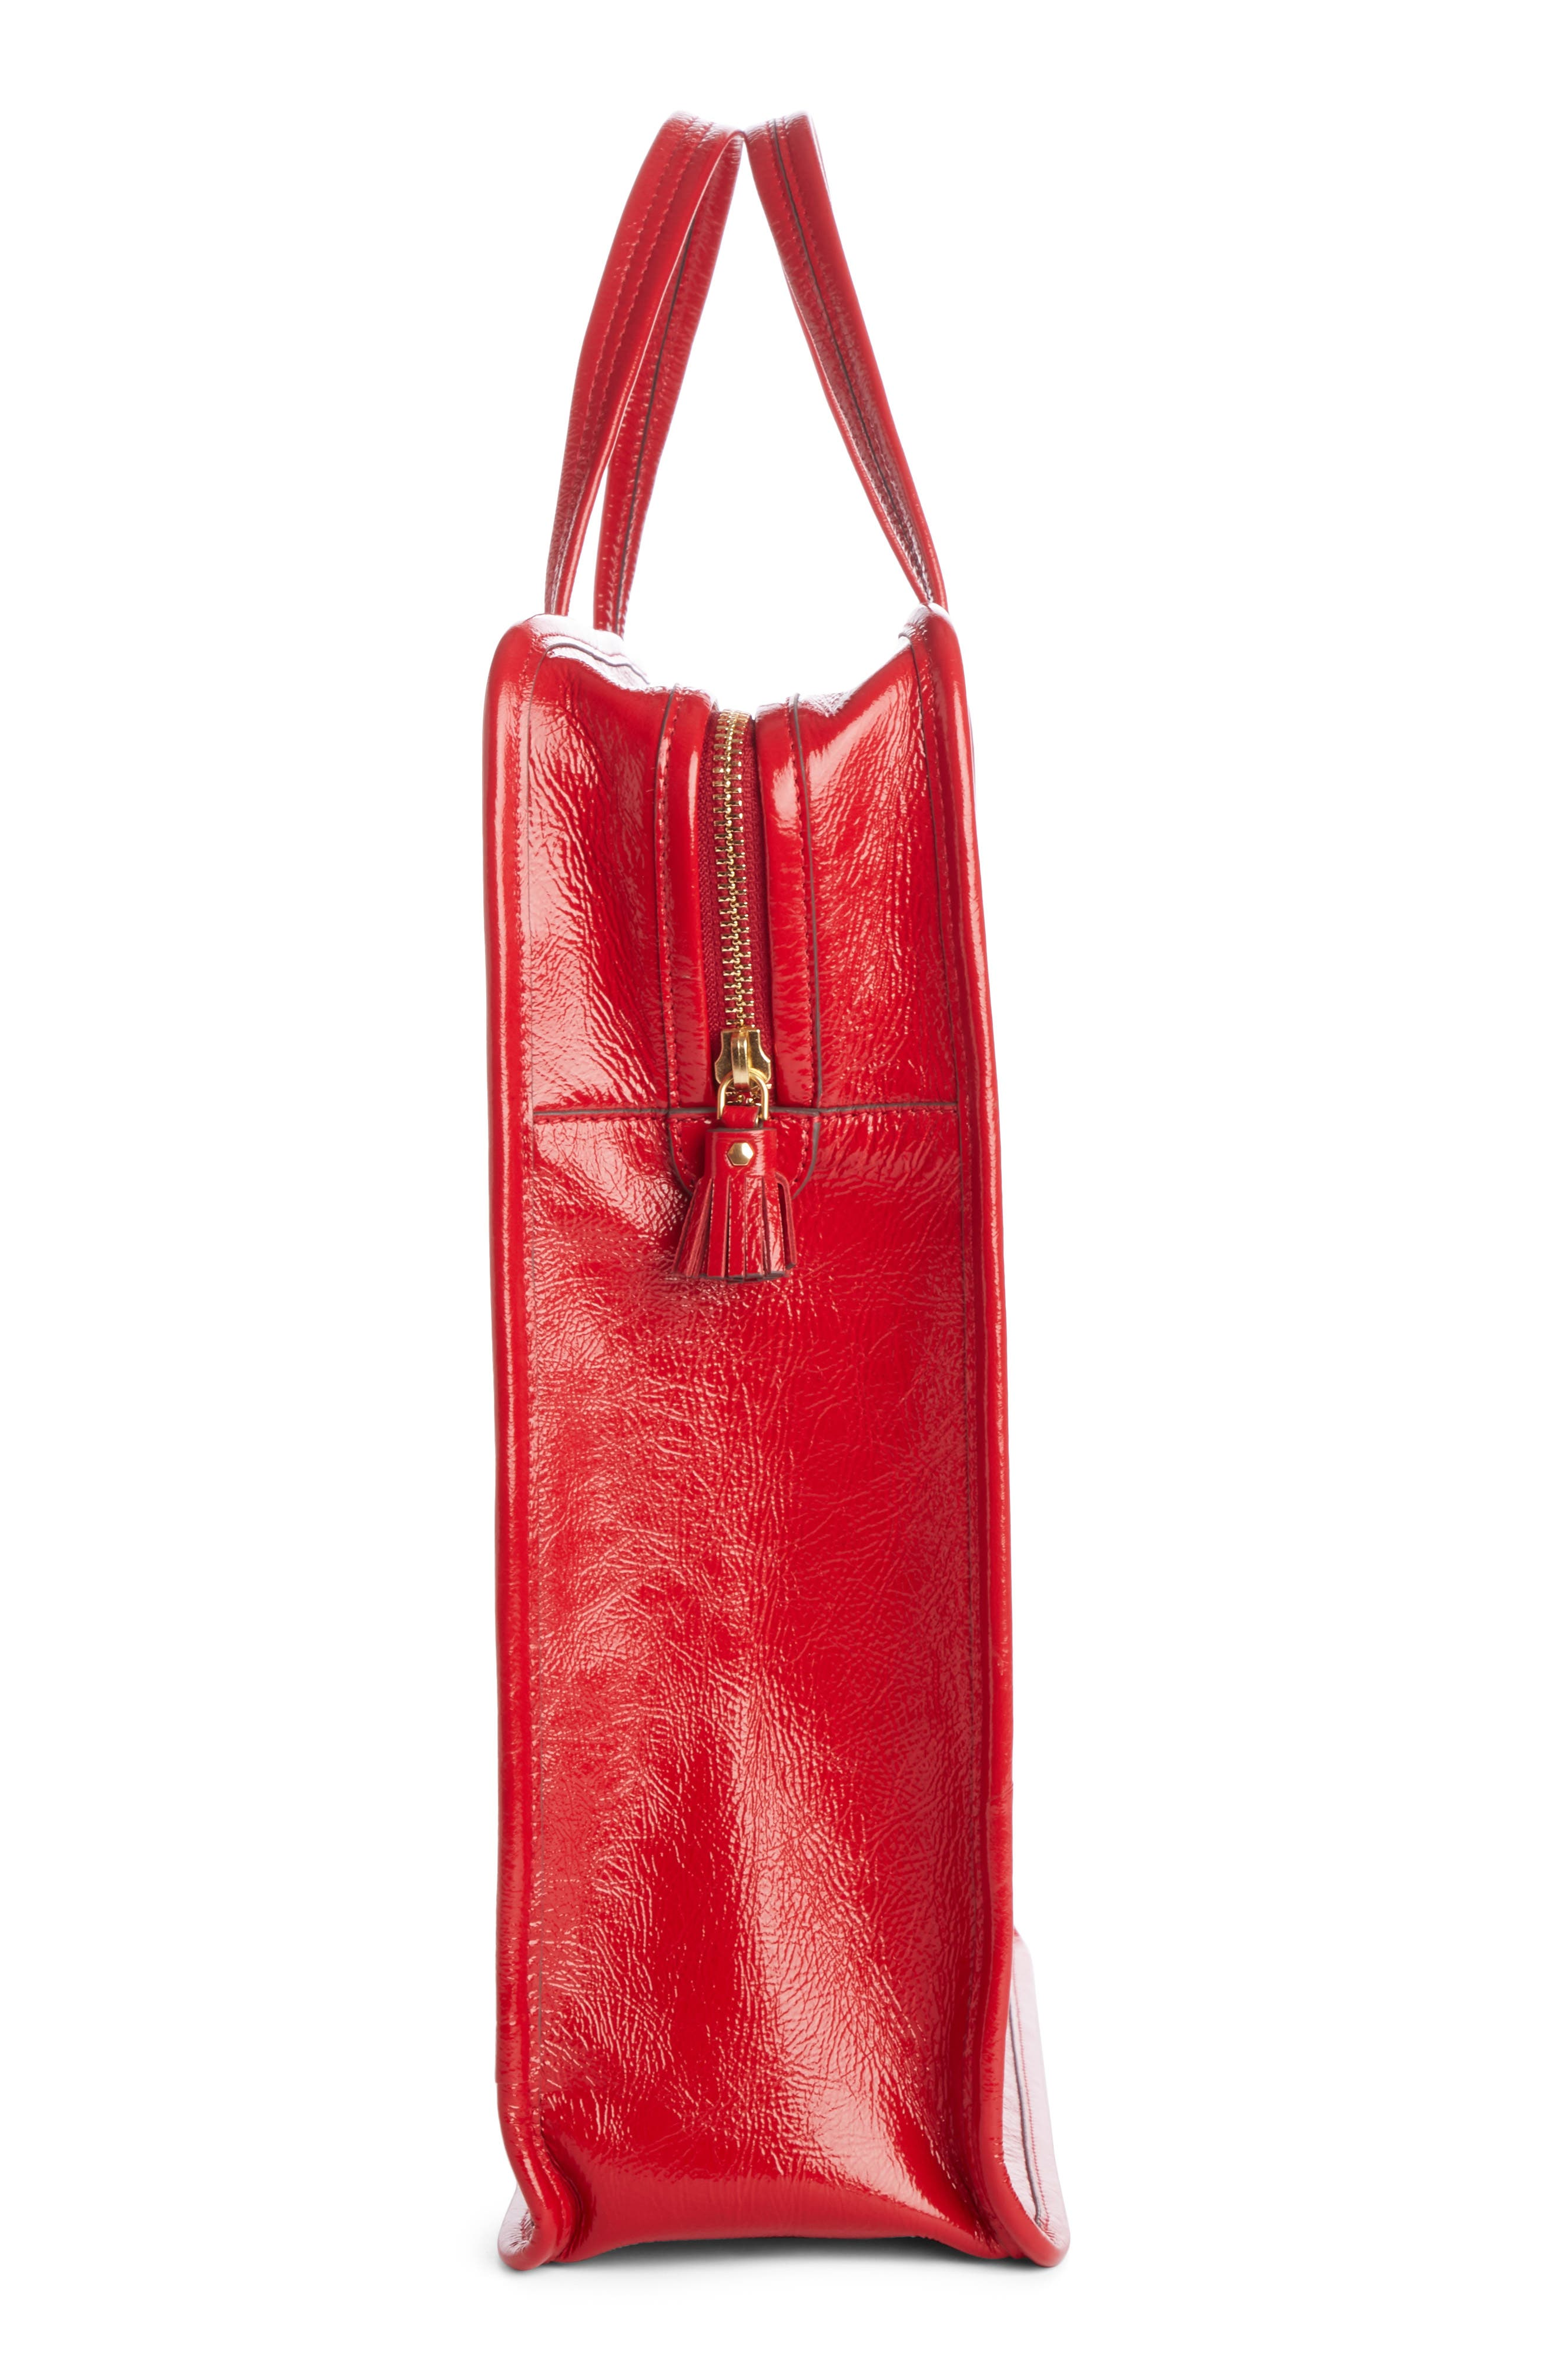 Rainy Day Cherries Tote,                             Alternate thumbnail 3, color,                             RED